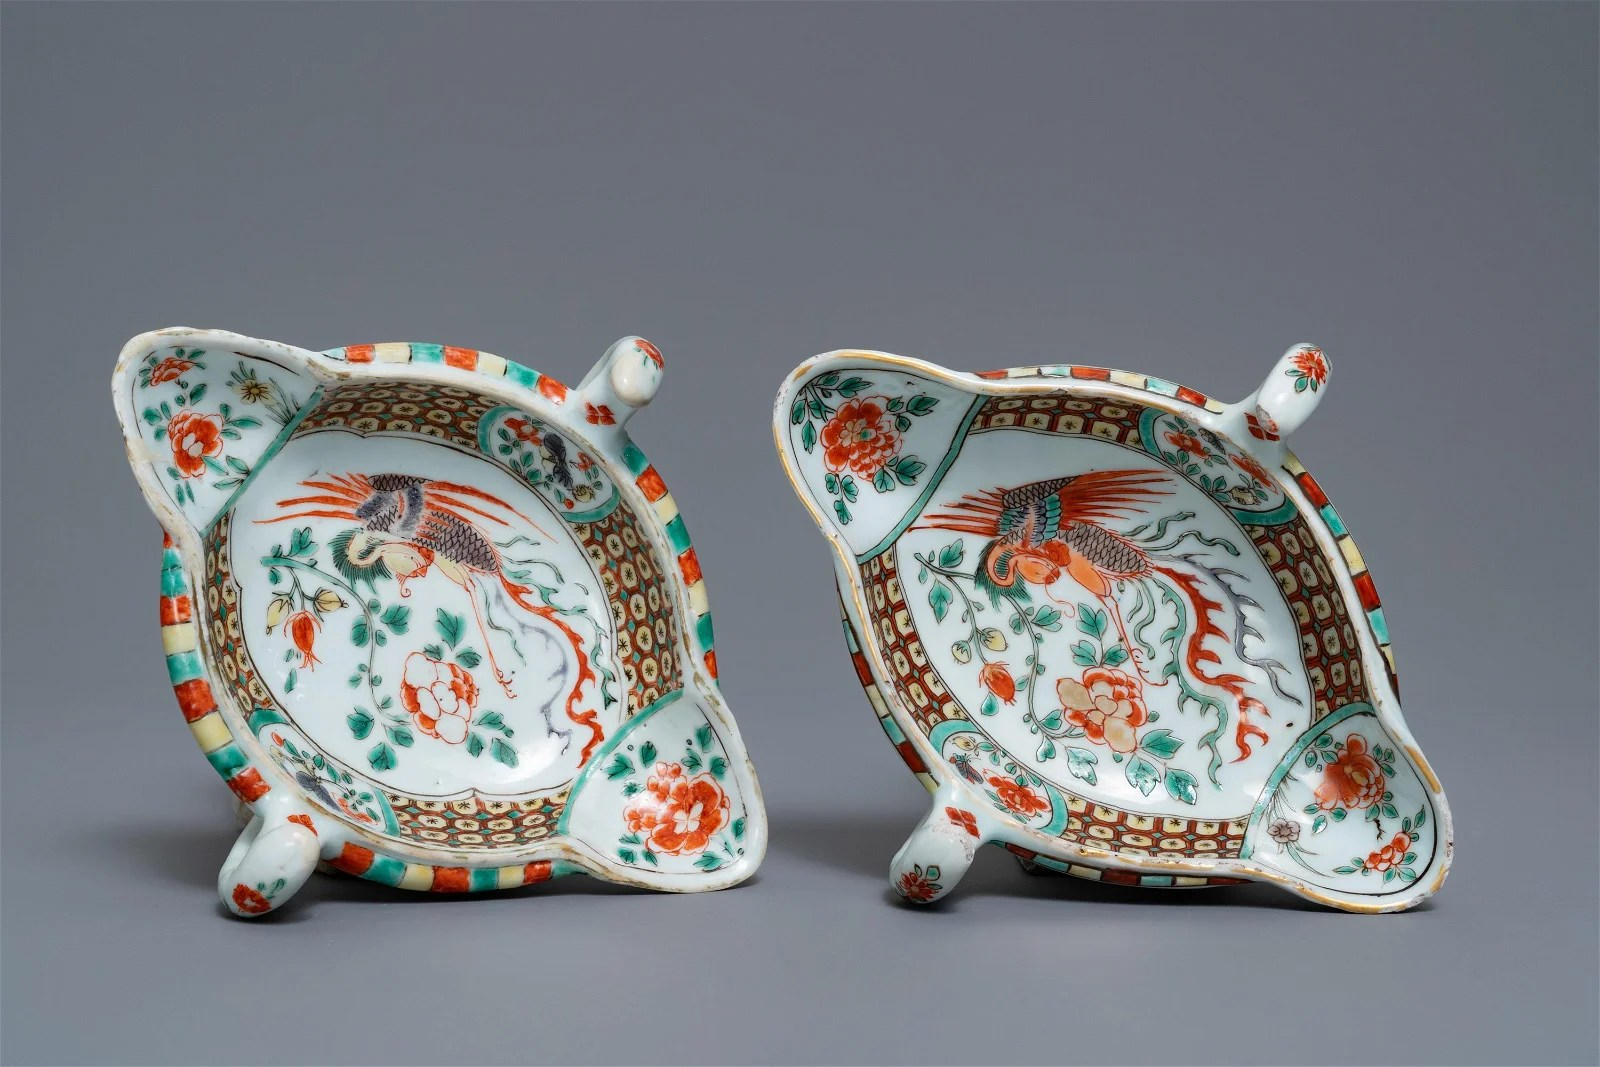 A pair of Chinese famille verte sauce boats with